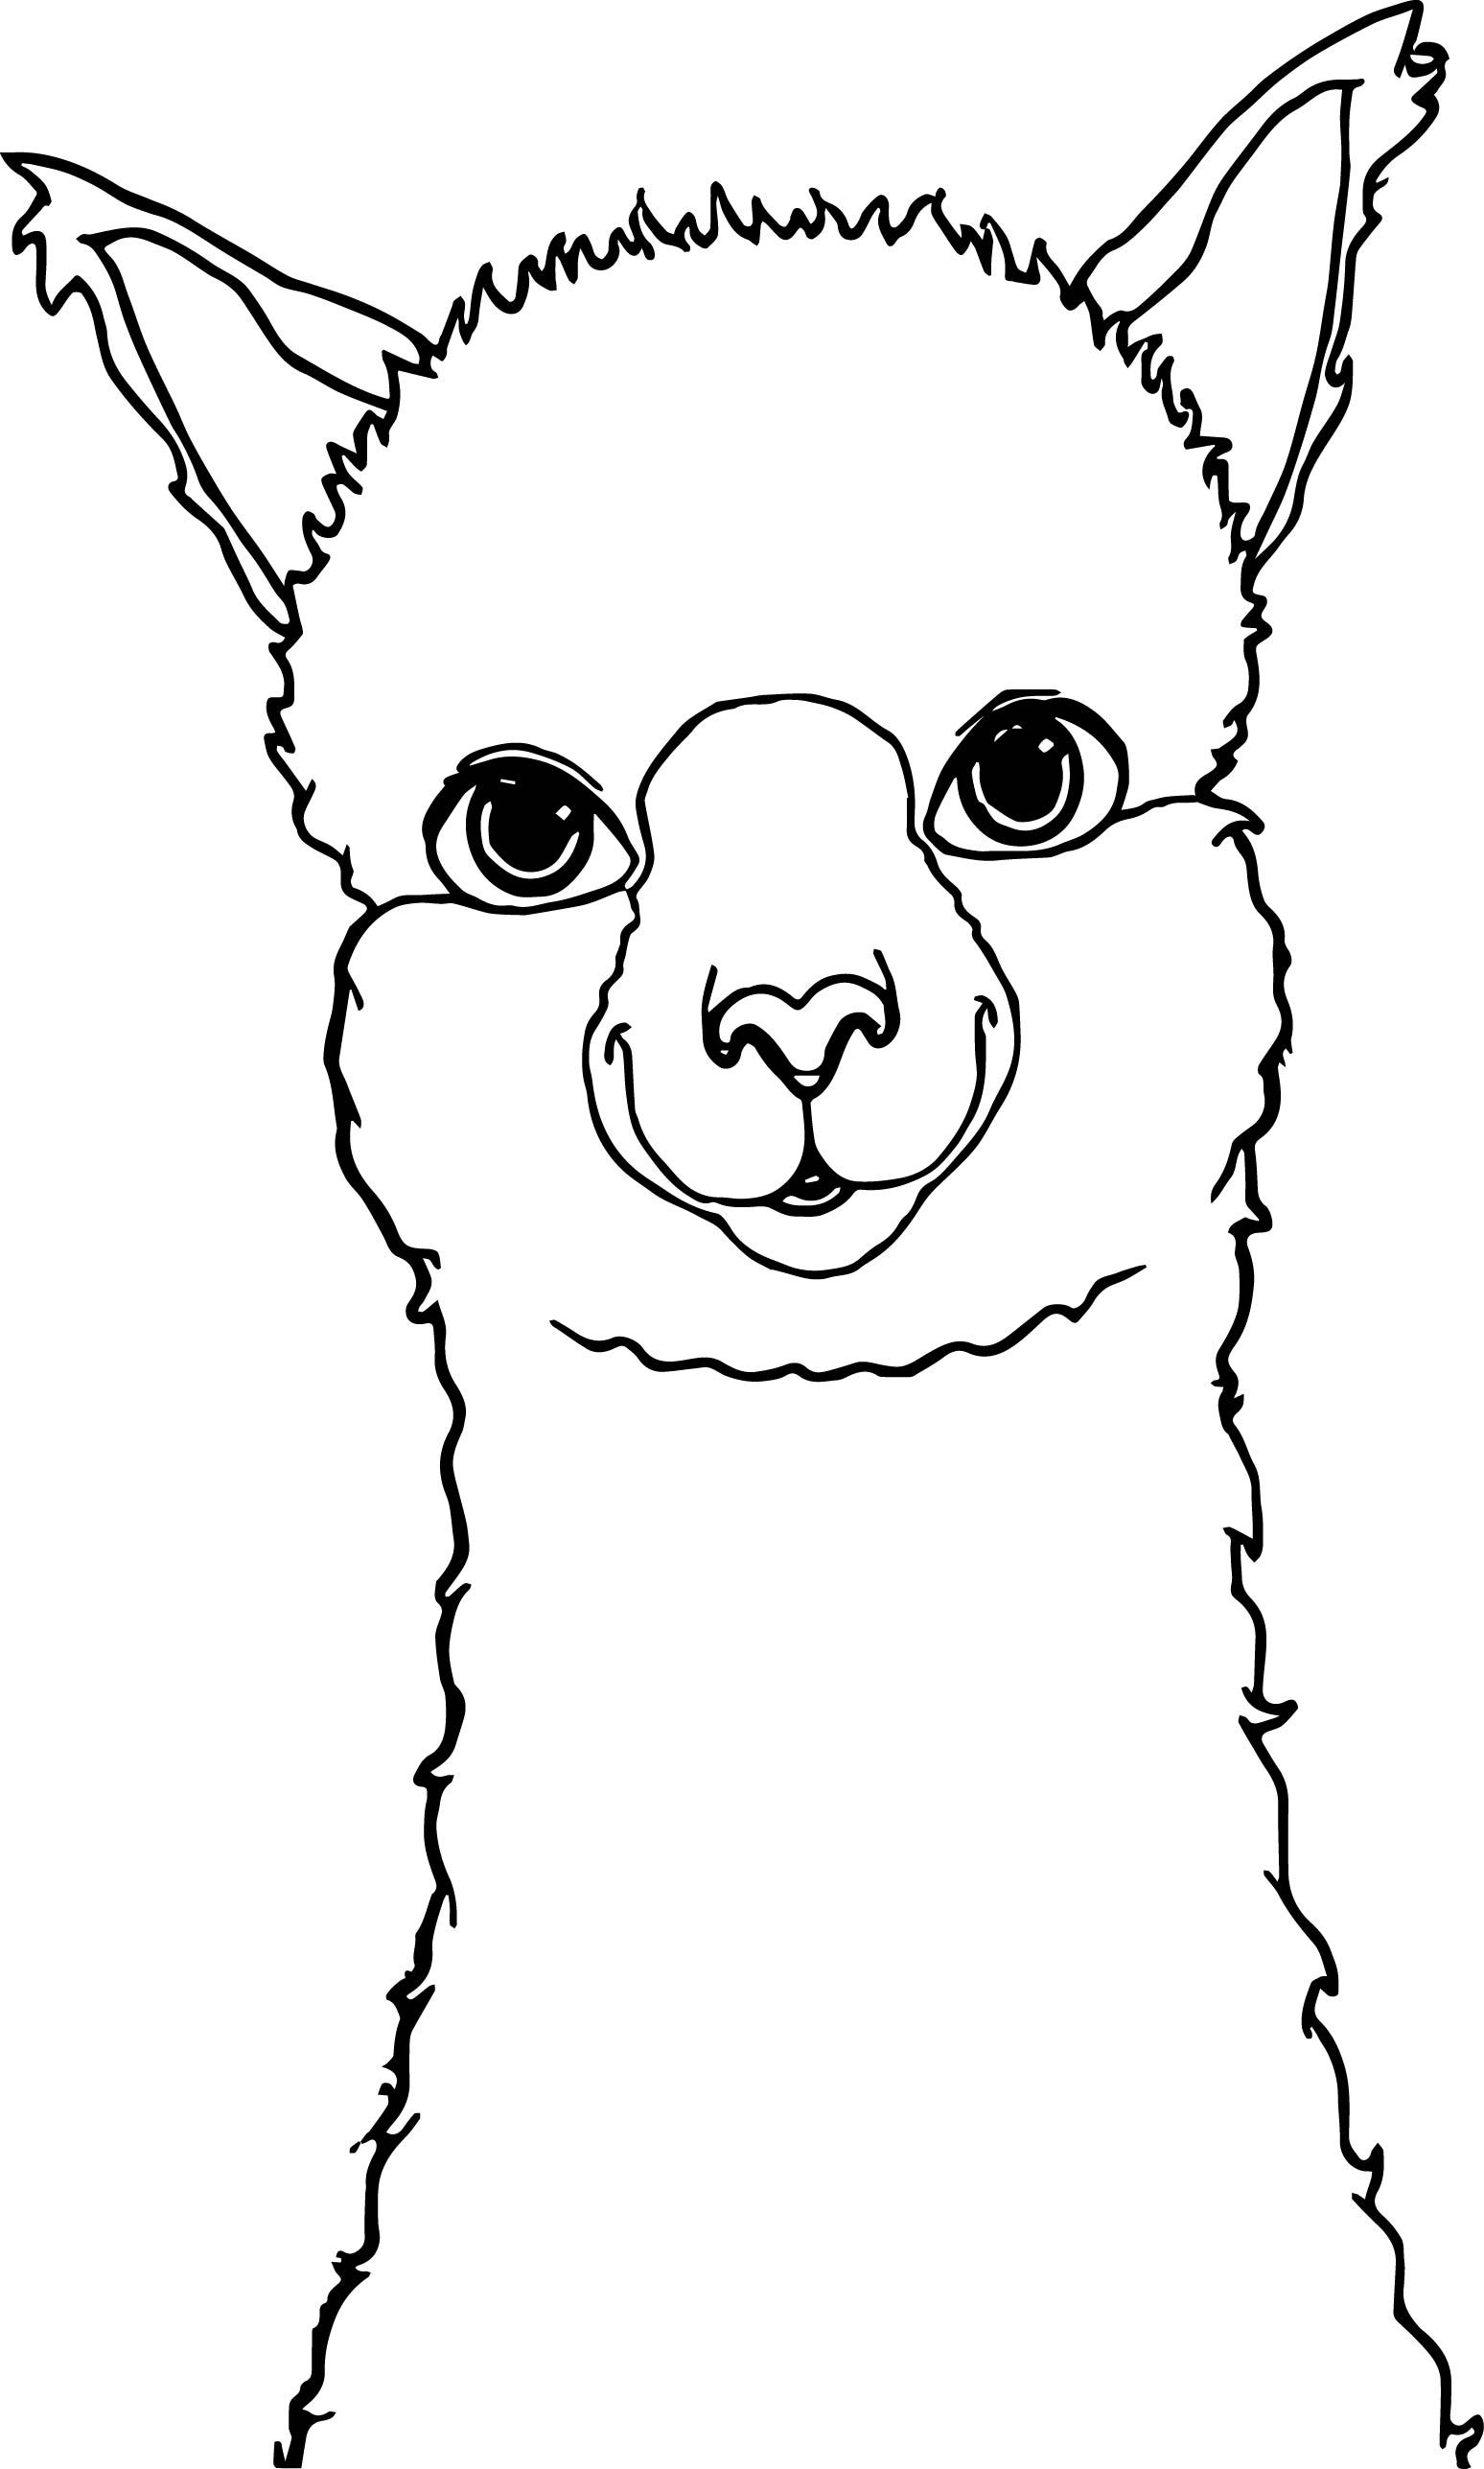 Alpaca Drawing Coloring Page Alpacas Llama alpaca and Animal